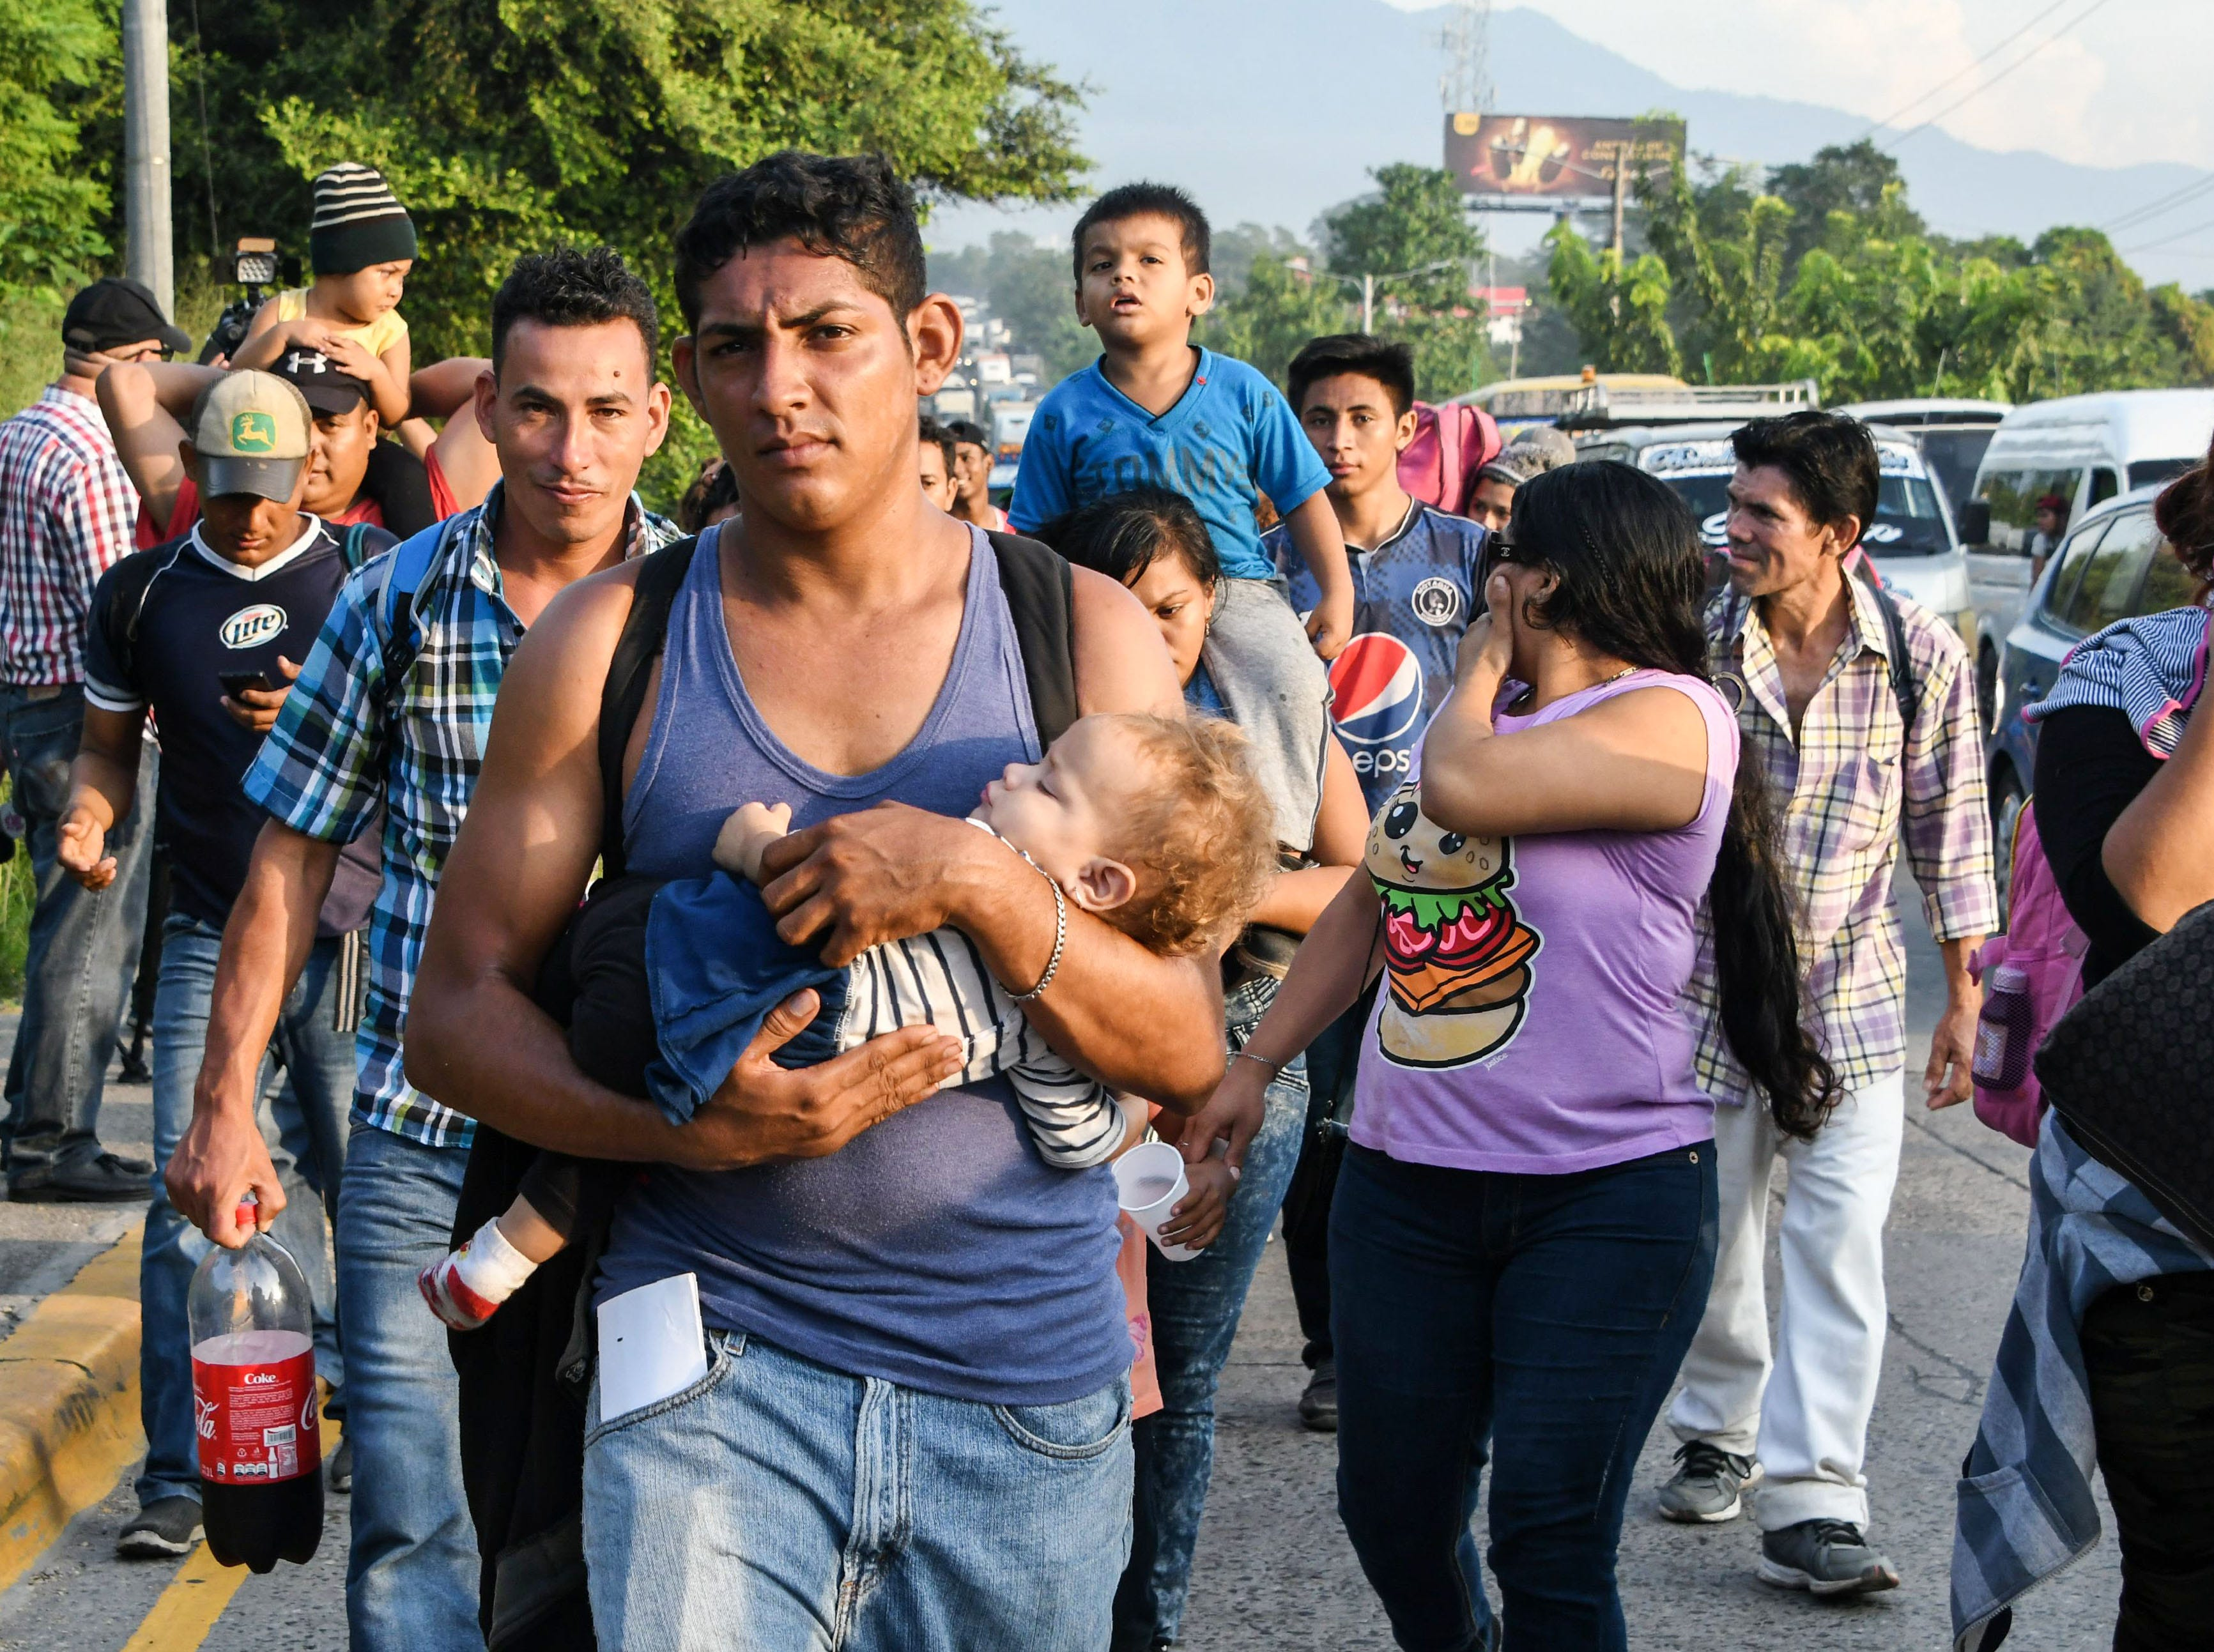 An Honduran man carries a child on is arms  during an exodus towards the US from San Pedro Sula, 180 kms north from Tegucigalpa, on October 13, 2018. - Hondurans decided to left their country due to insecurity and the lack of employment opportunities. The exodus started from the bus station in San Pedro Sula towards the border with Guatemala. (Photo by ORLANDO SIERRA / AFP)        (Photo credit should read ORLANDO SIERRA/AFP/Getty Images)